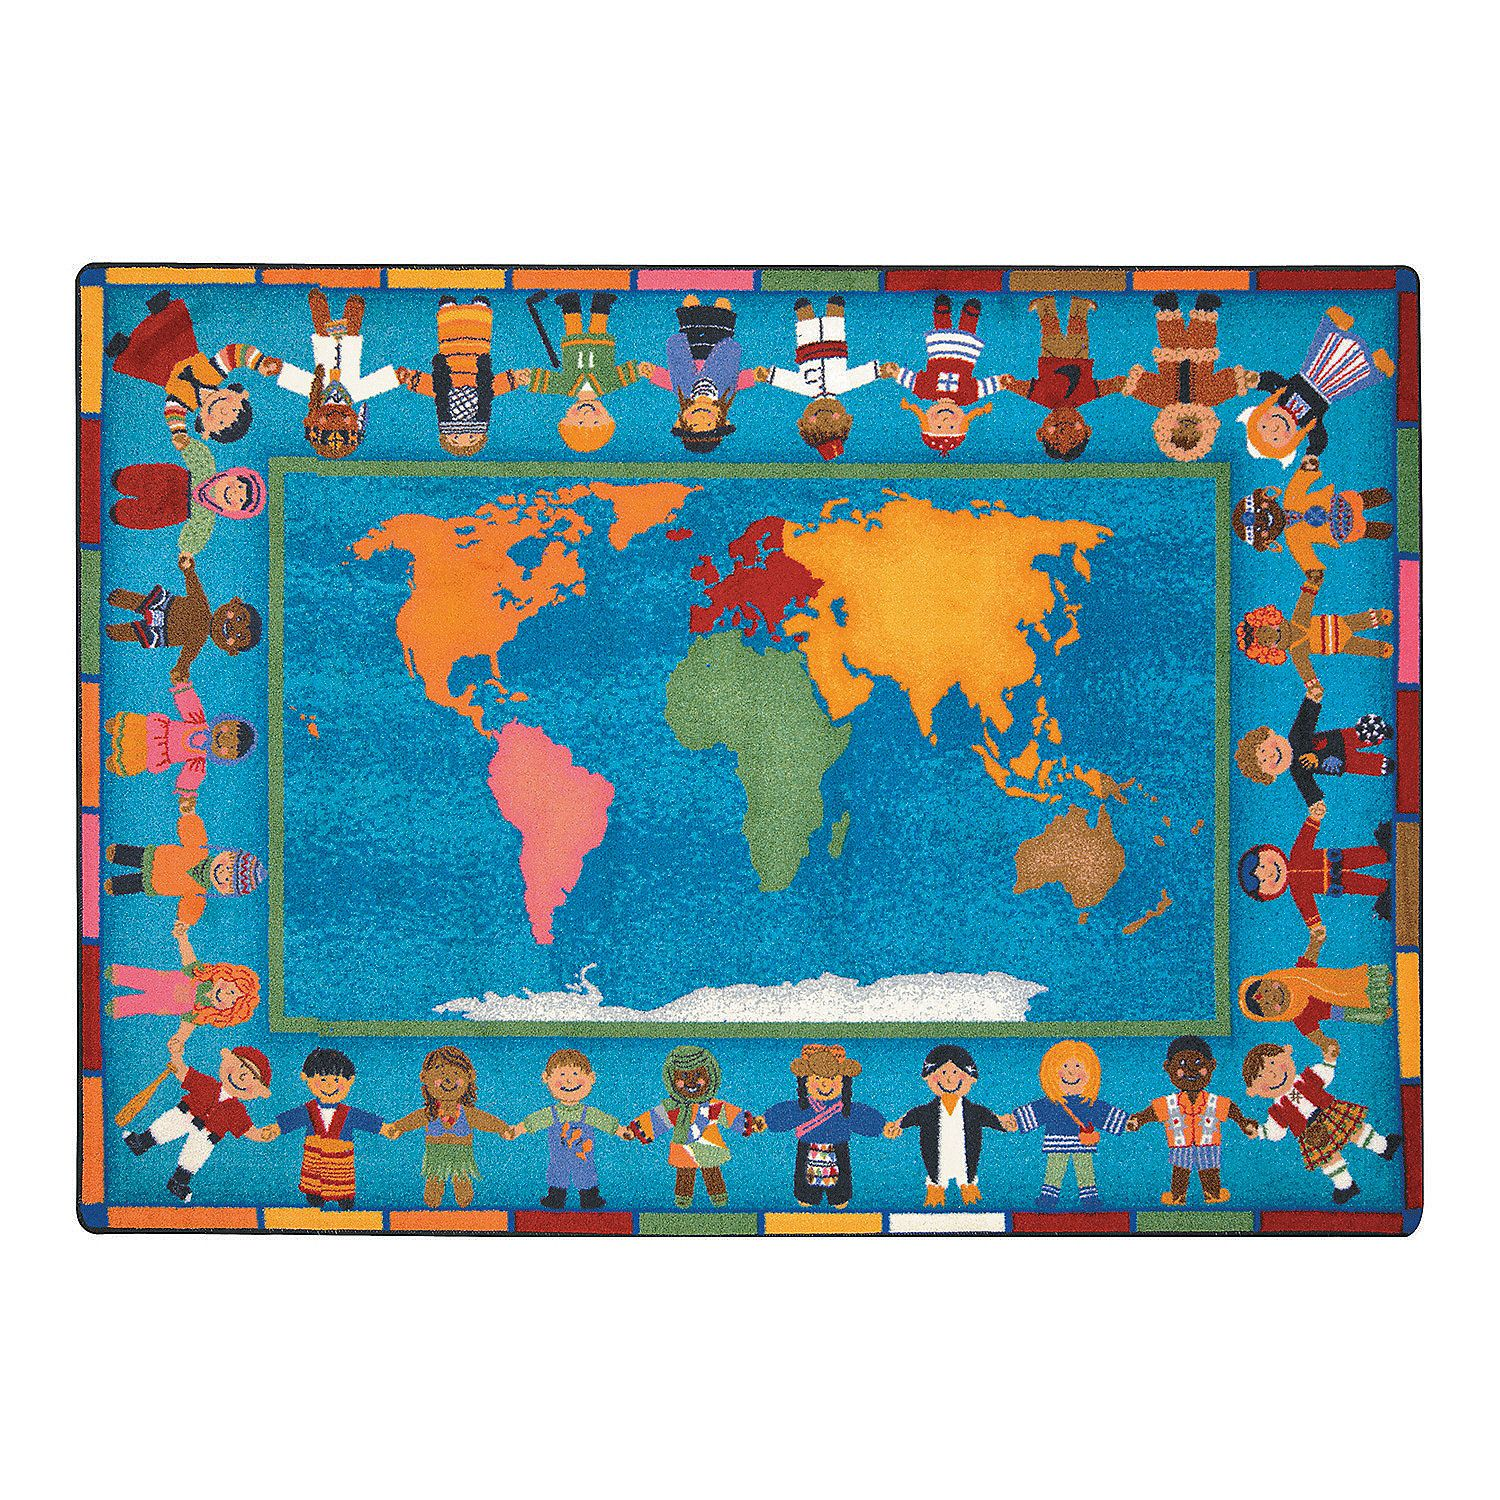 Hands Around The World Classroom Rug Classroom Rug Kids Area Rugs Classroom Carpets